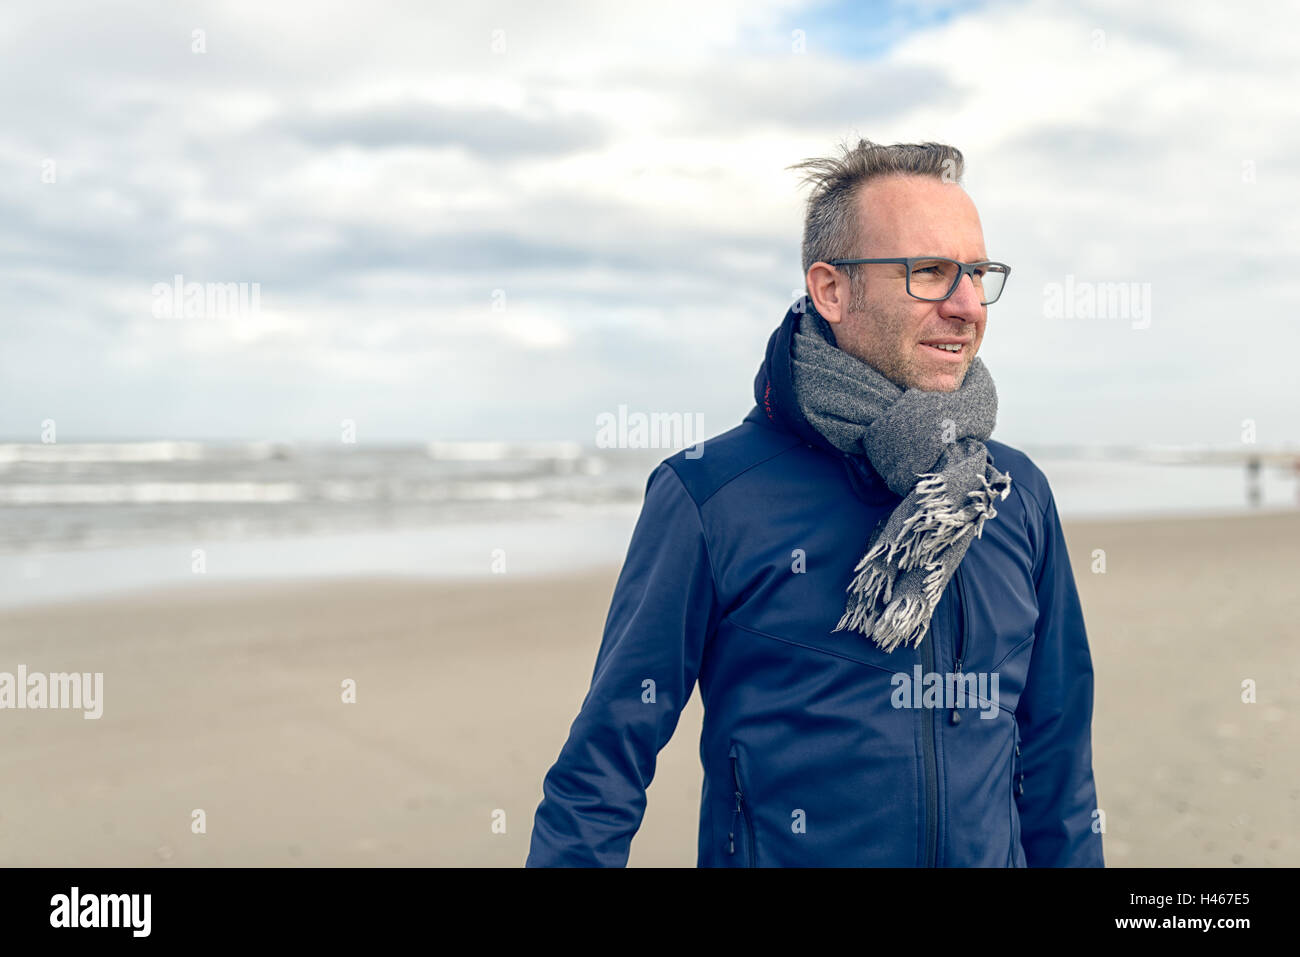 Irritated middle-aged man wearing glasses and a knitted woollen scarf standing on a deserted autumn beach on a cloudy - Stock Image